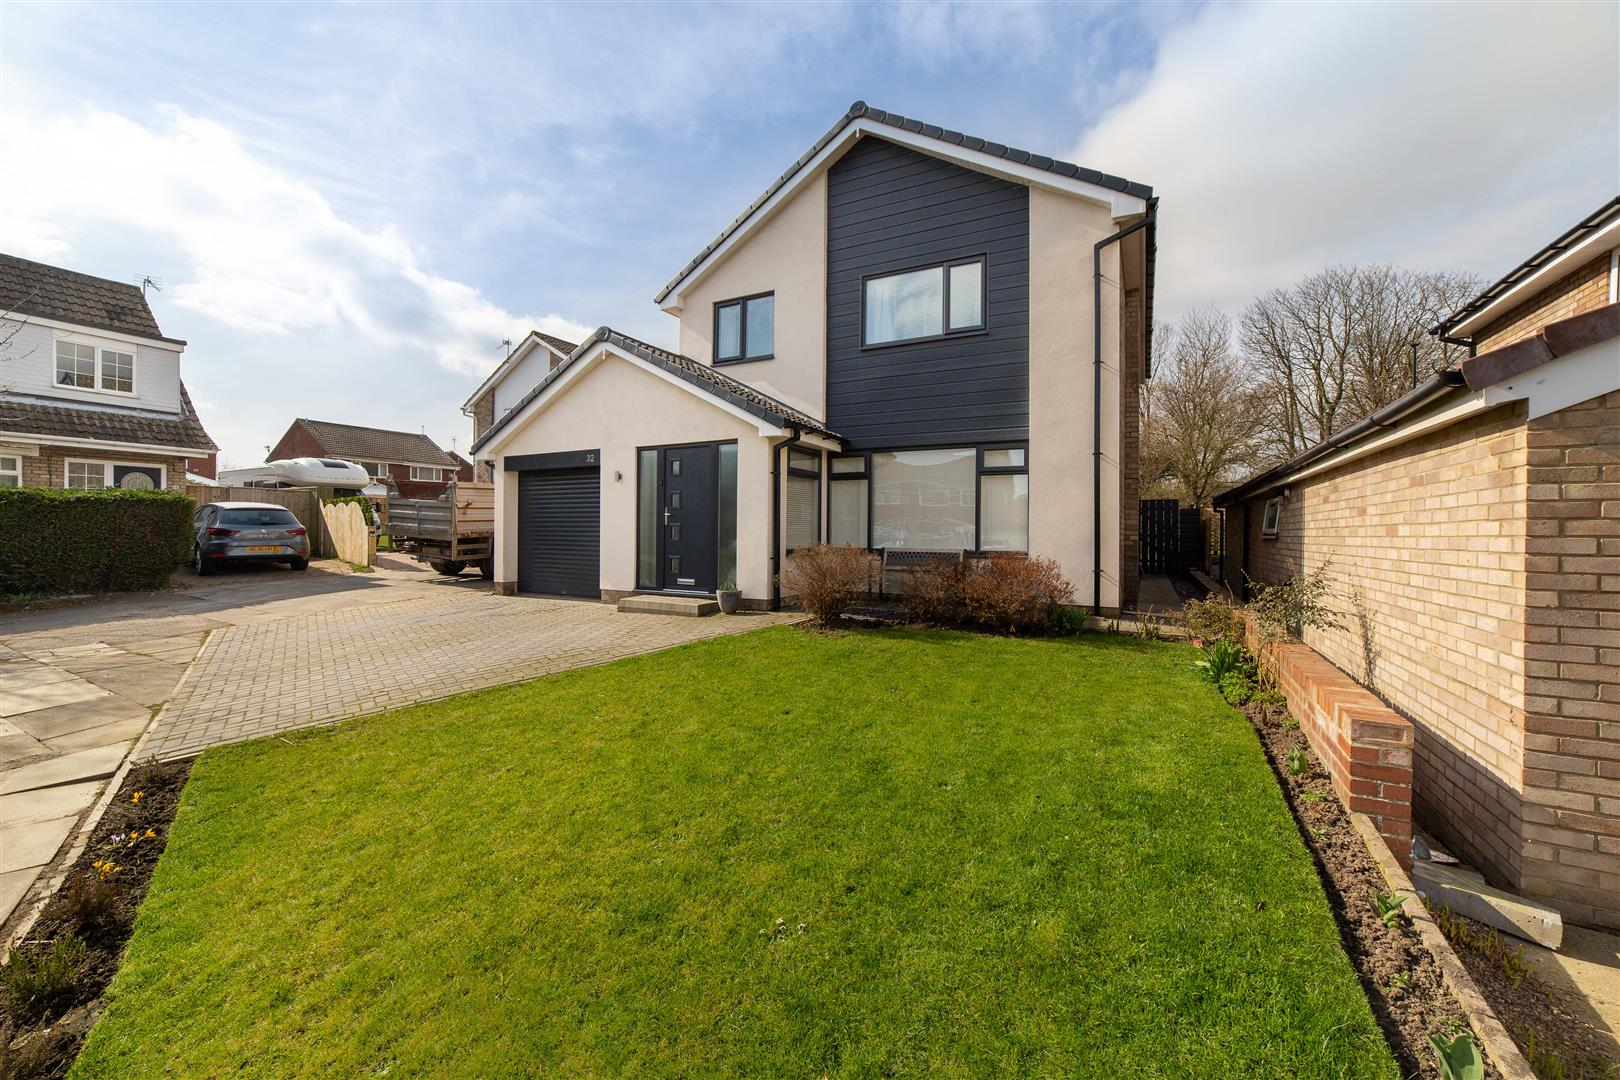 4 bed detached house for sale in Huntingdon Close, Kingston Park  - Property Image 1